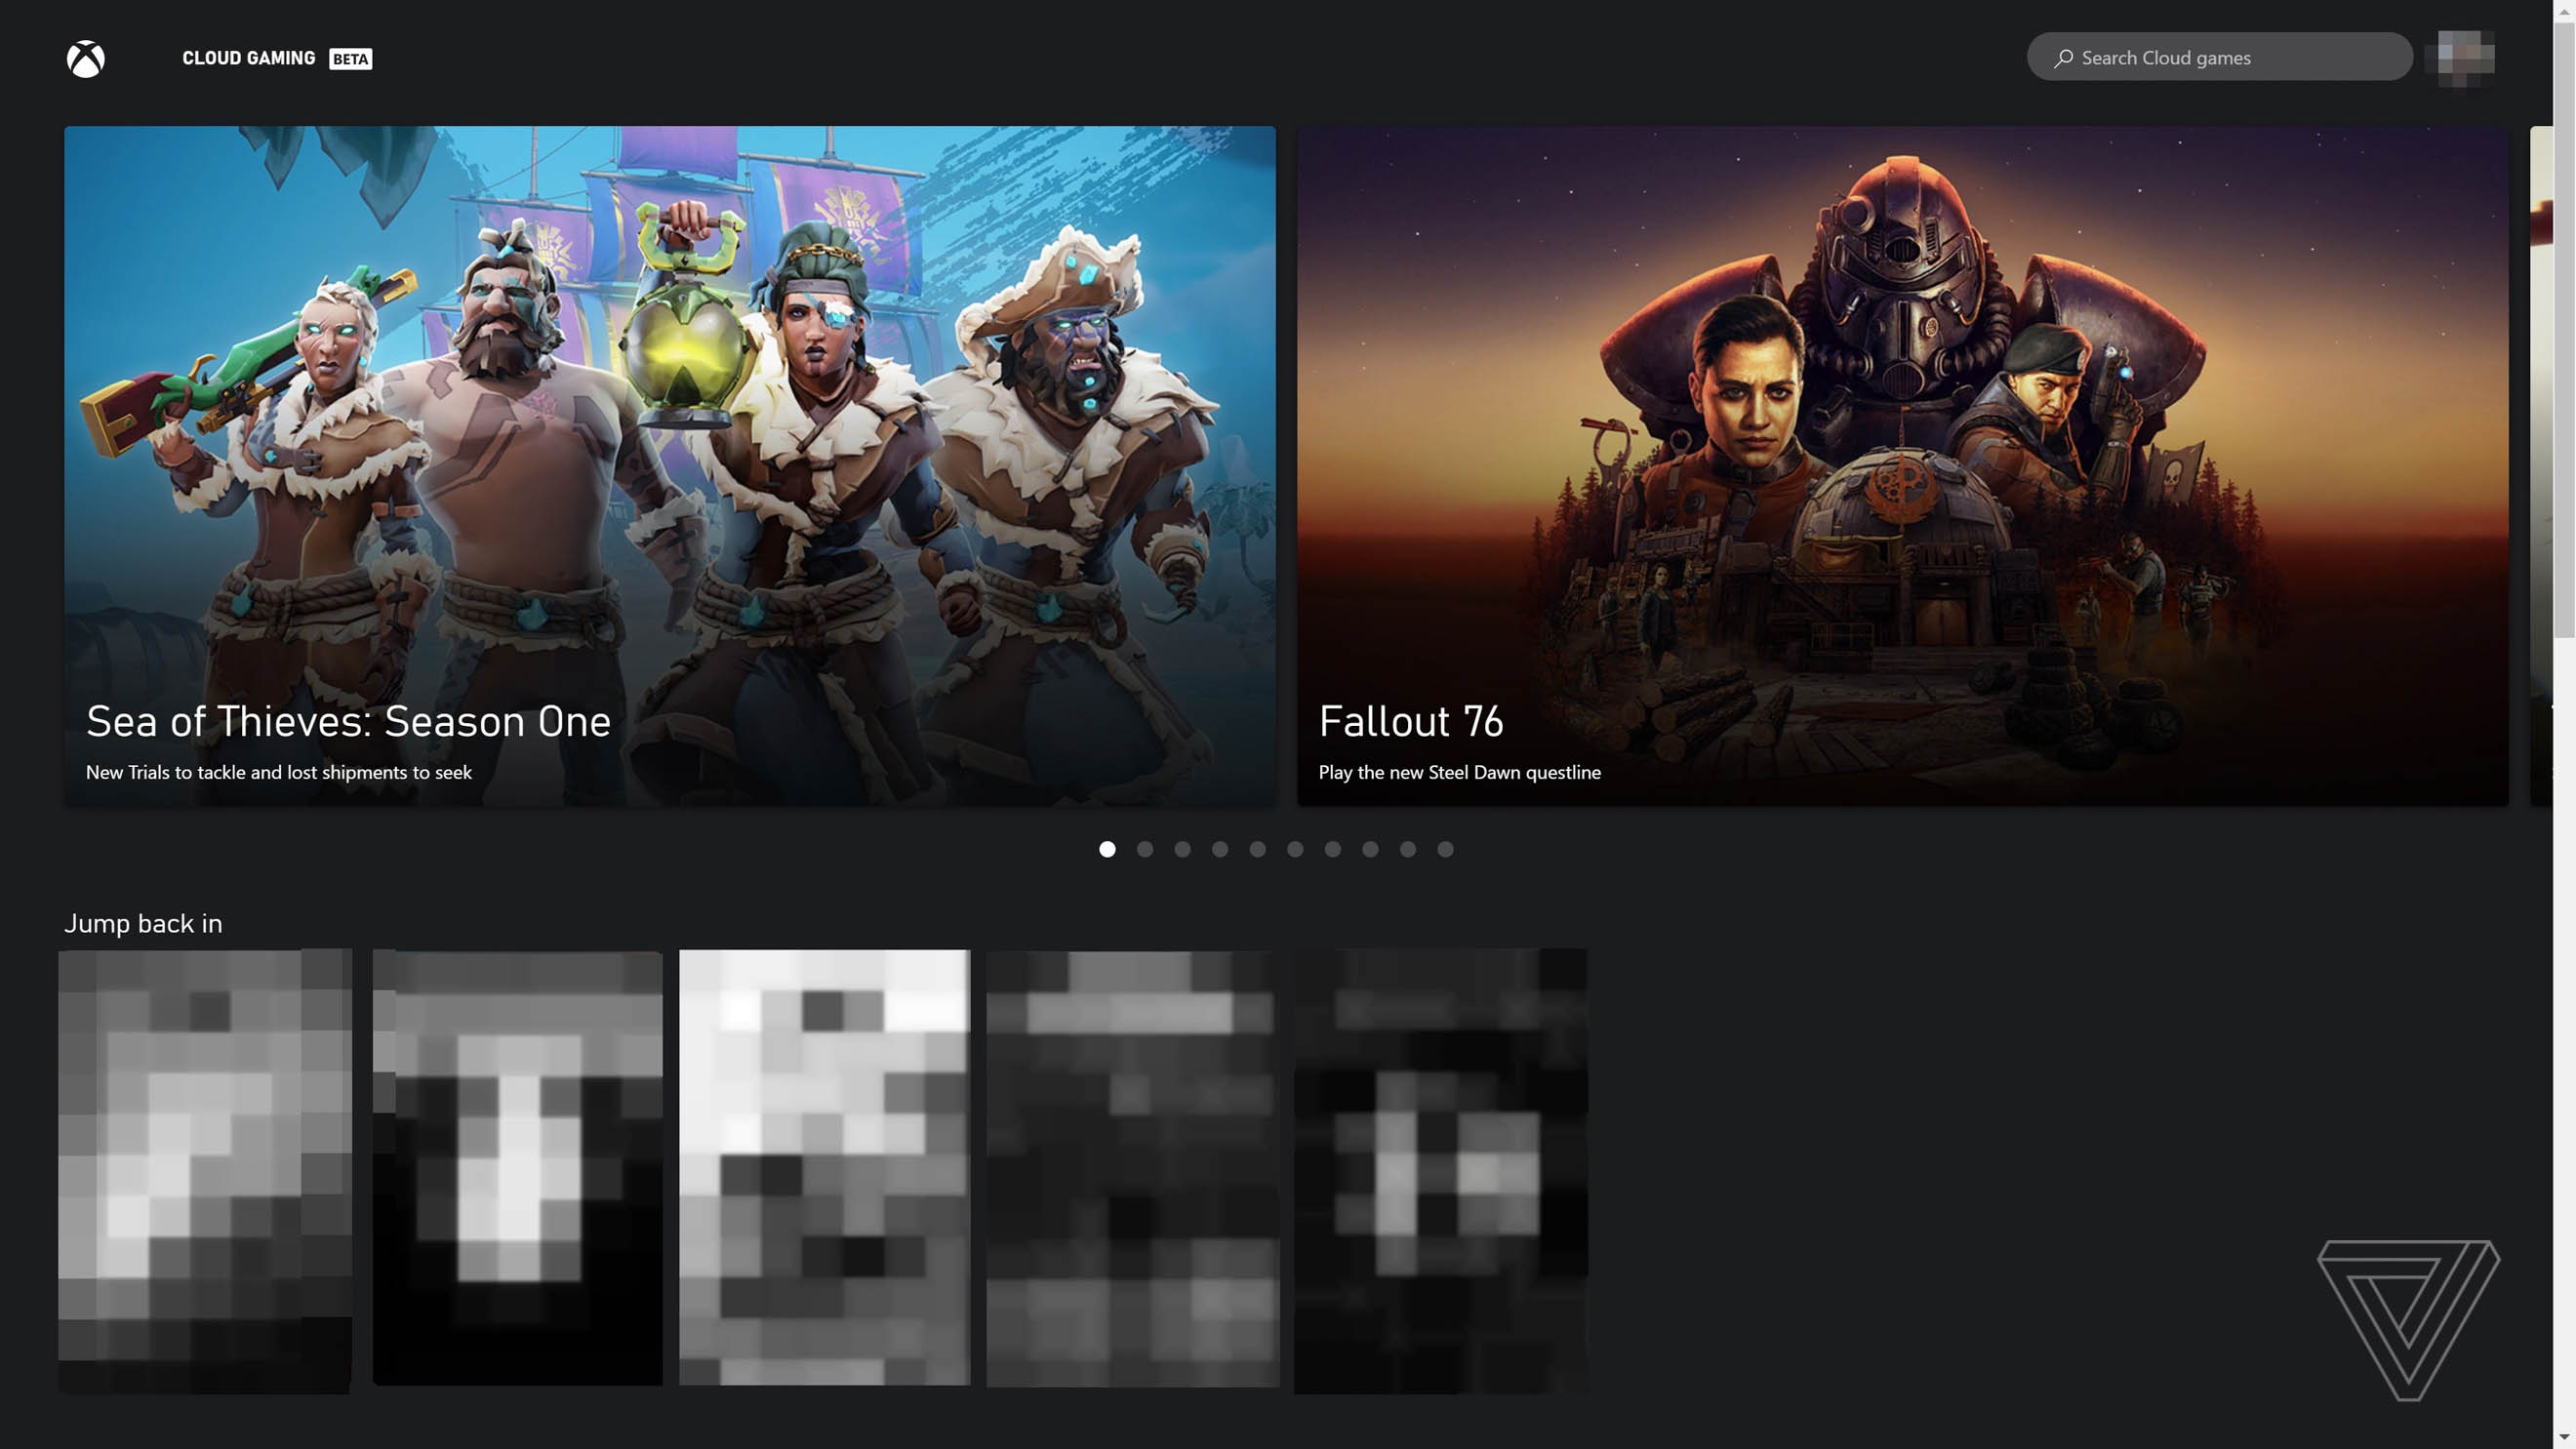 Xbox cloud gaming recently played